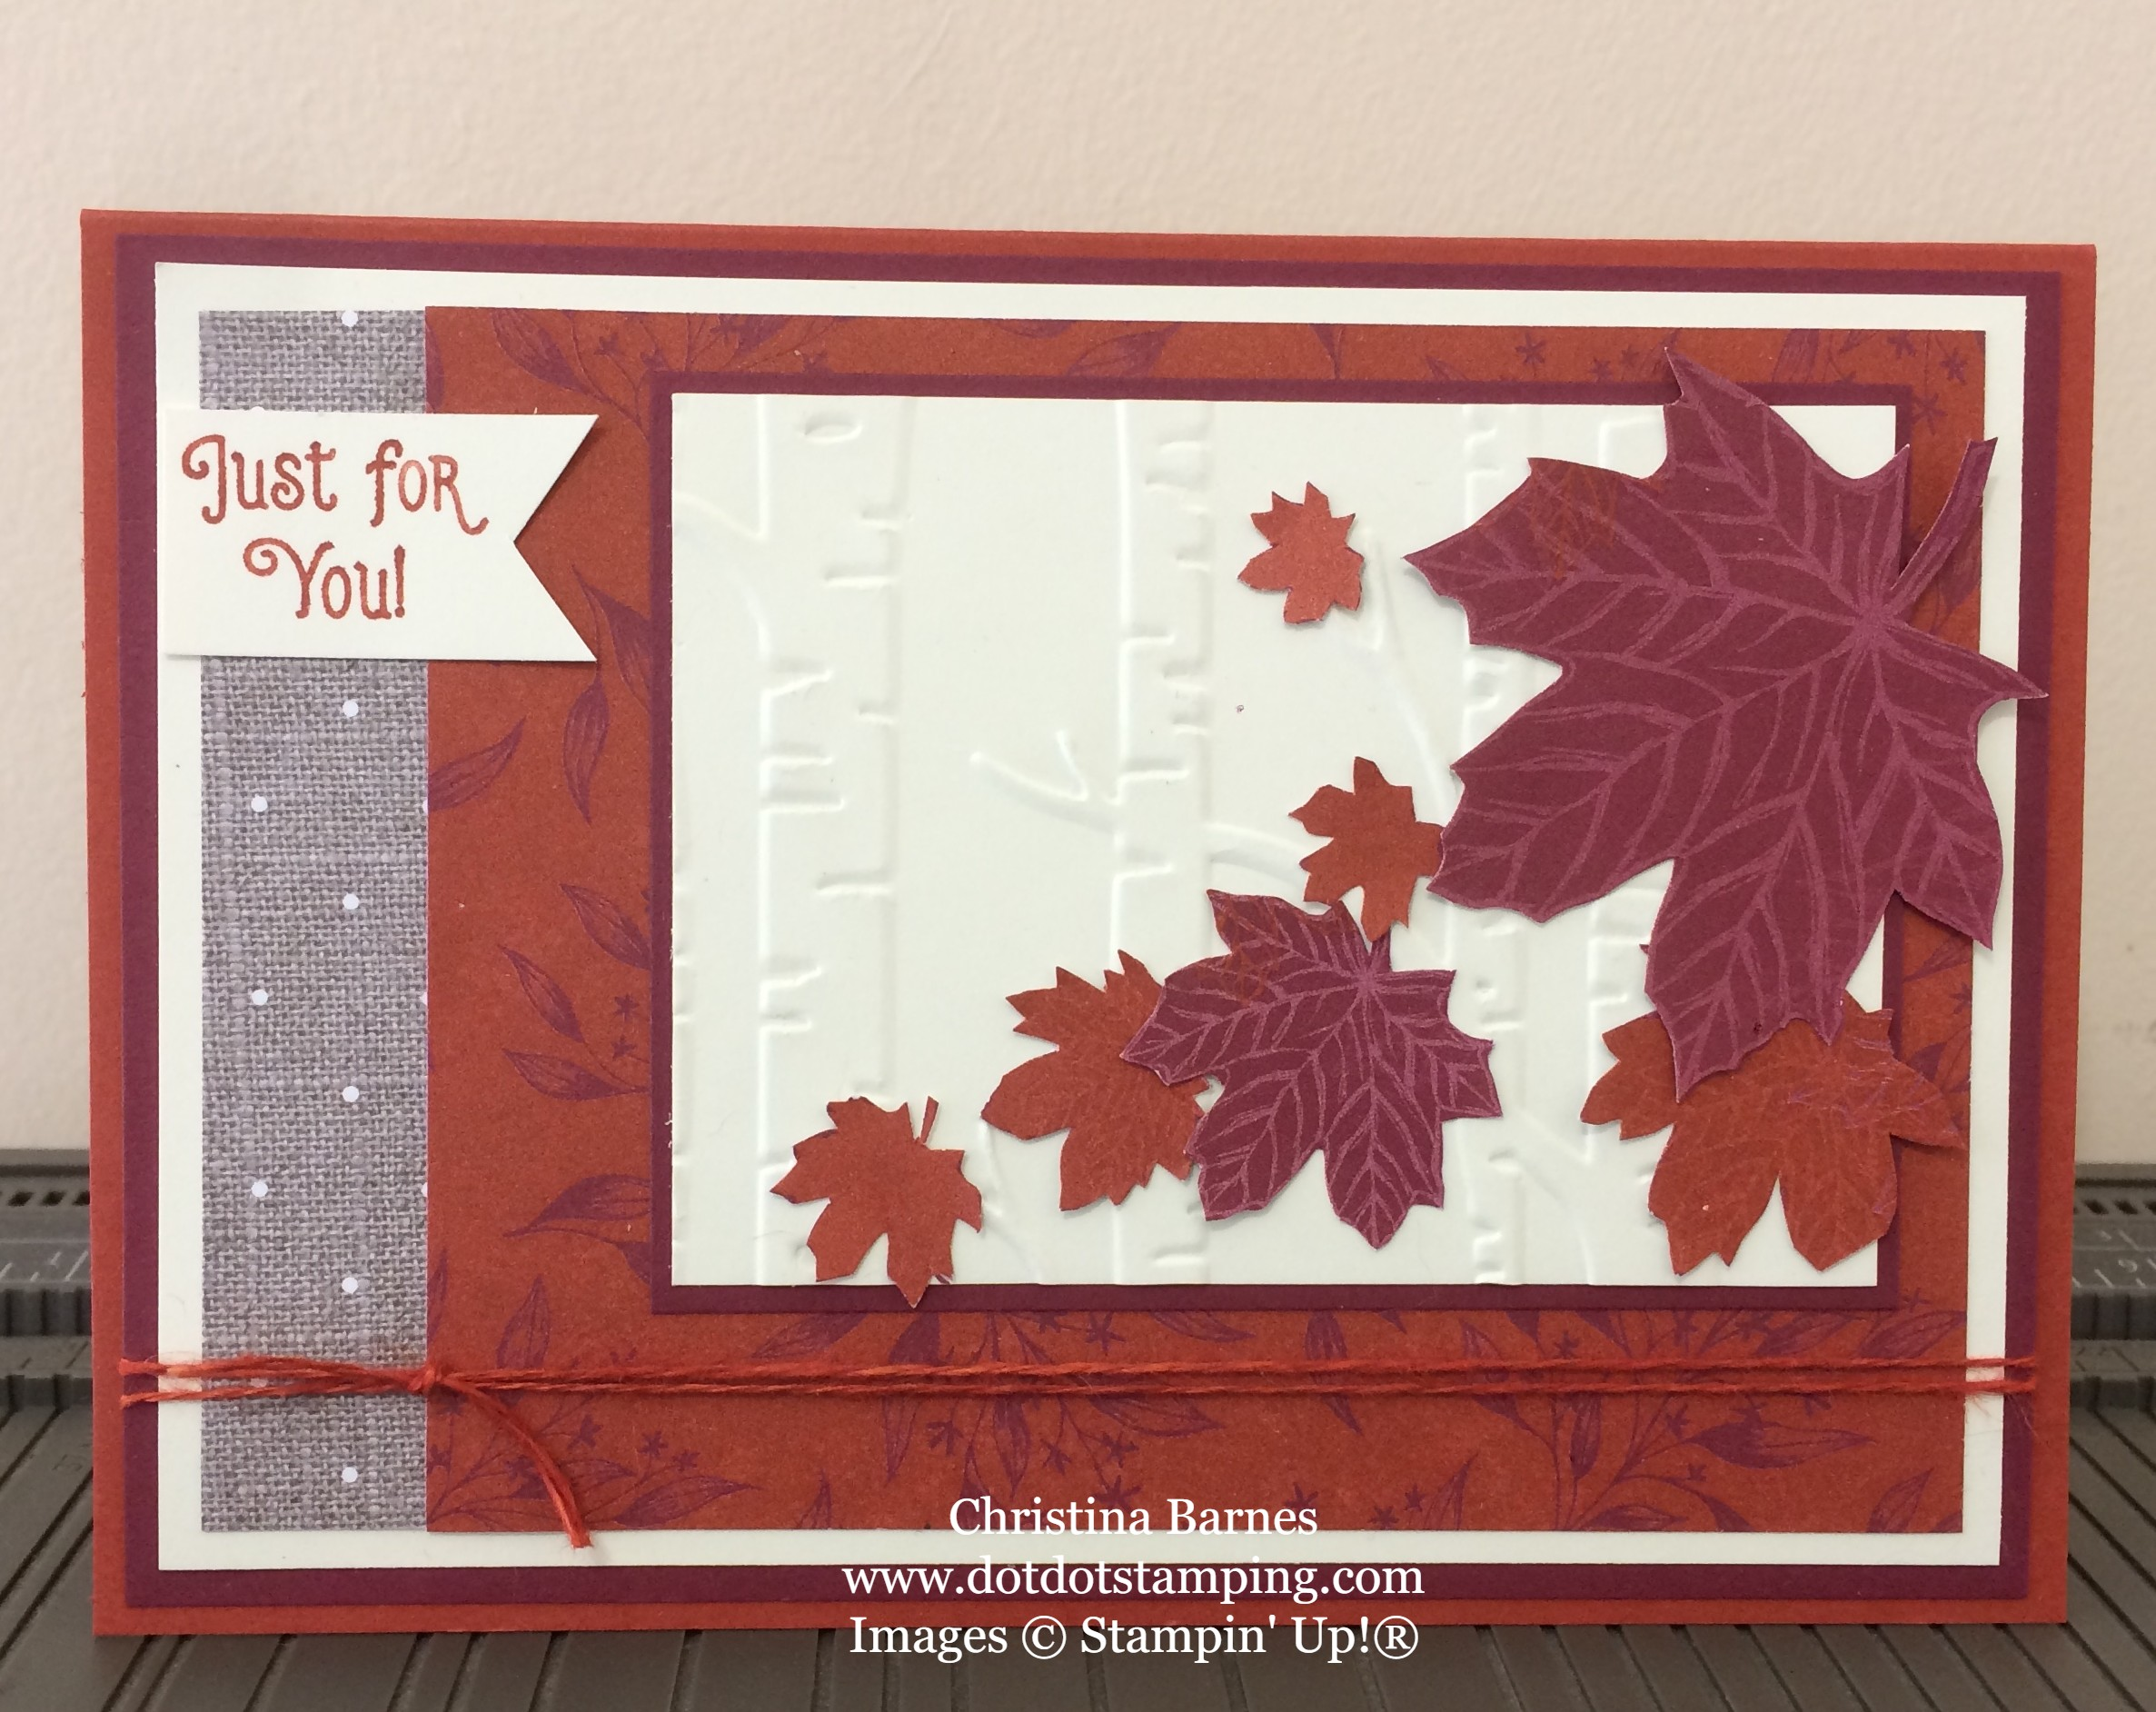 Autumn Card Come To Gather Designer Series Paper 2019 Stampin Up Holiday Catalogue Christina Barnes Dot Dot Stamping